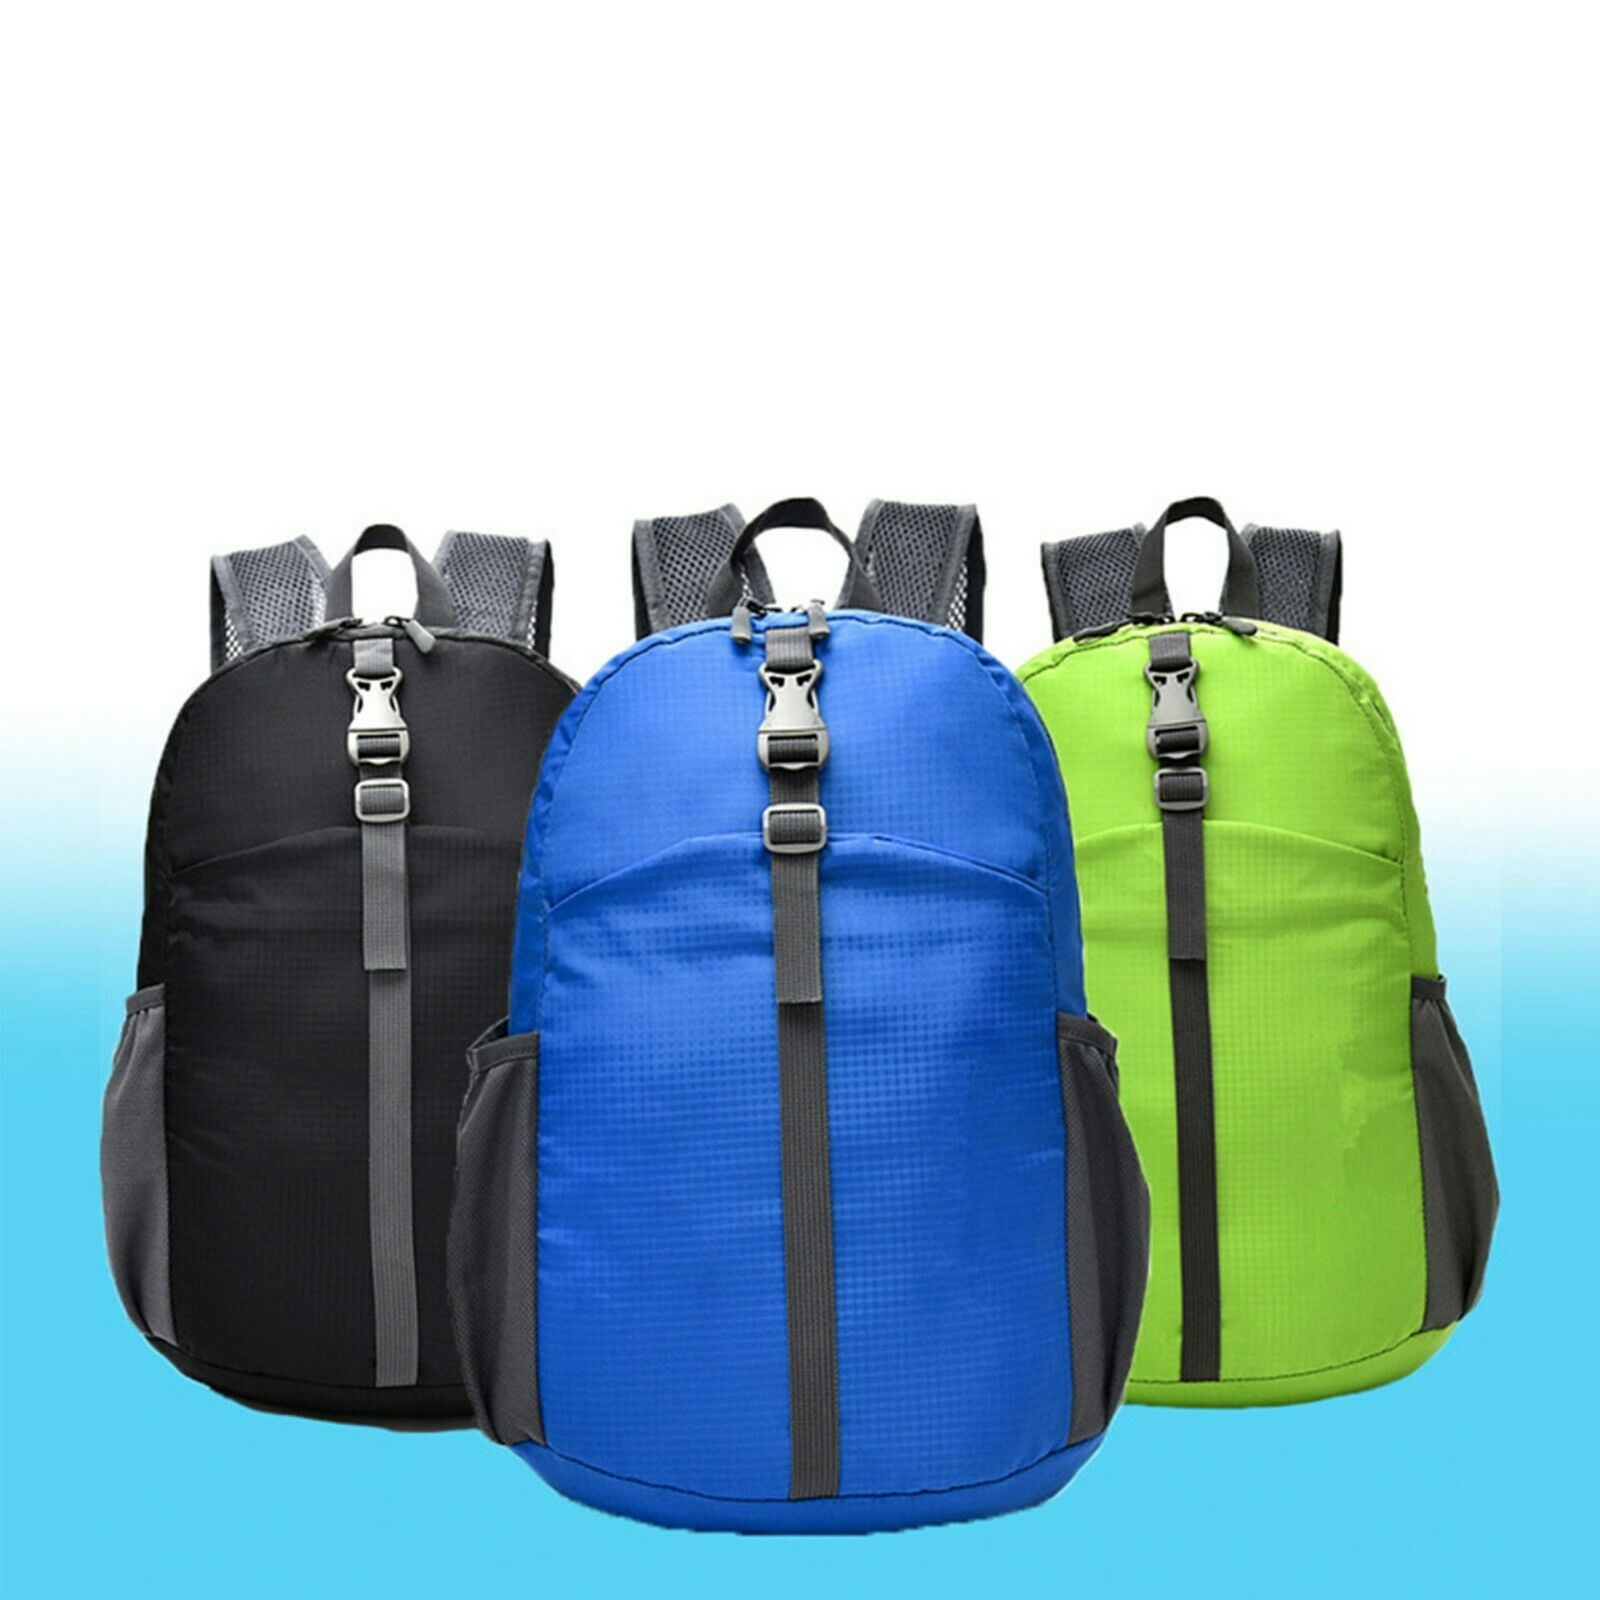 Durable Lightweight Packable Backpack Water Resistant Travel